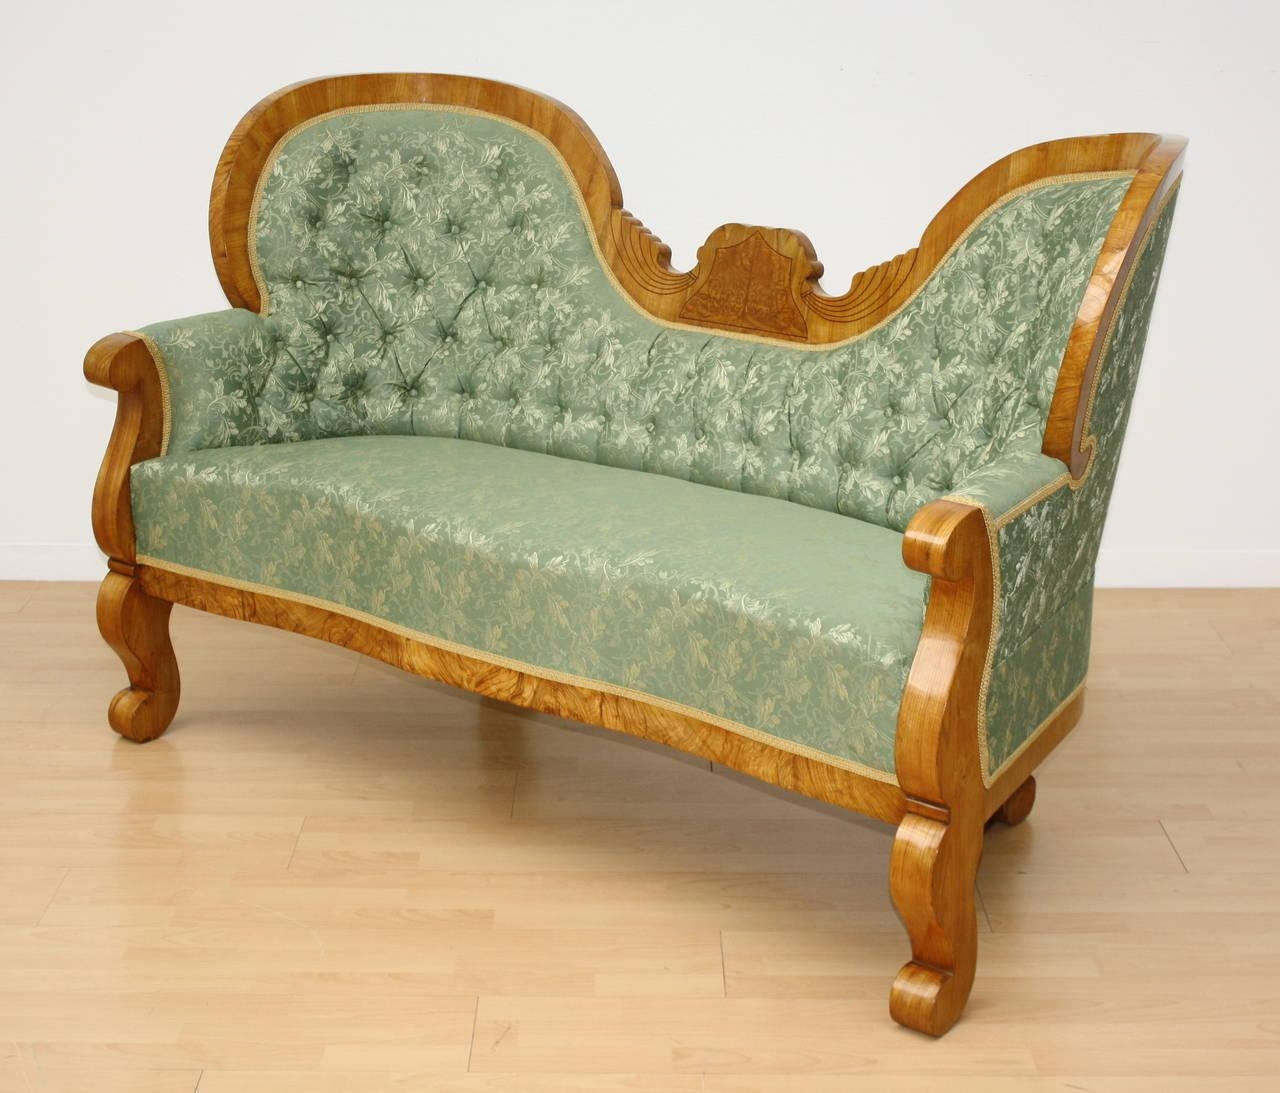 19Th Century Austrian Biedermeier Sofa For Sale At 1Stdibs Intended For Biedermeier Sofas (Image 1 of 20)